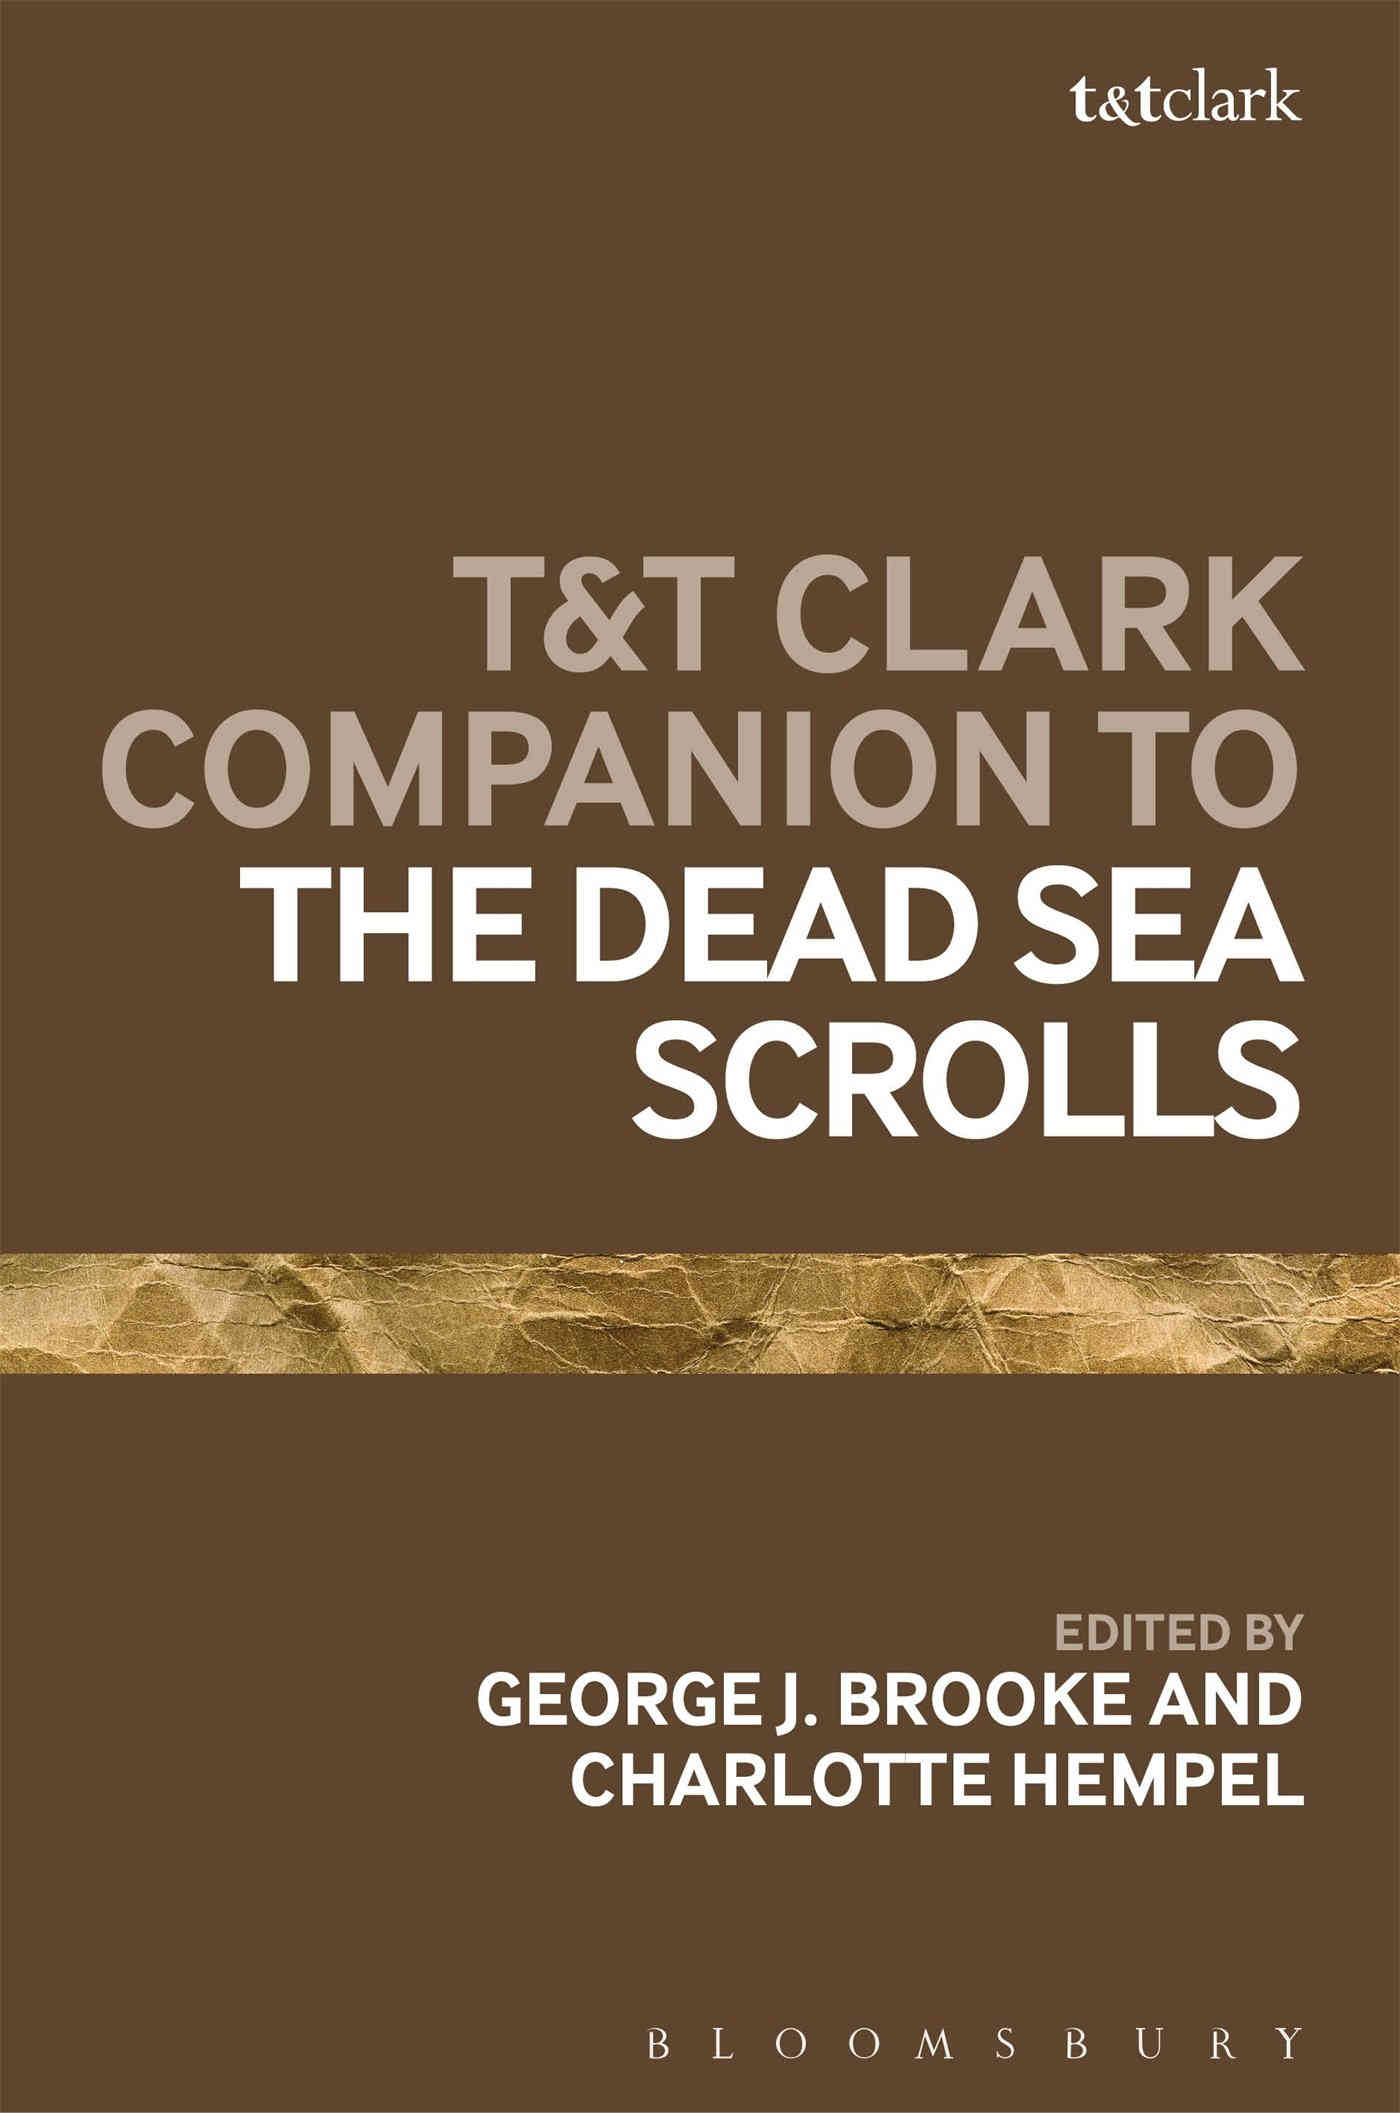 BROOKE, G. J. ; HEMPEL, C. T&T Clark Companion to the Dead Sea Scrolls. London: Bloomsbury, 2018, 512 p.